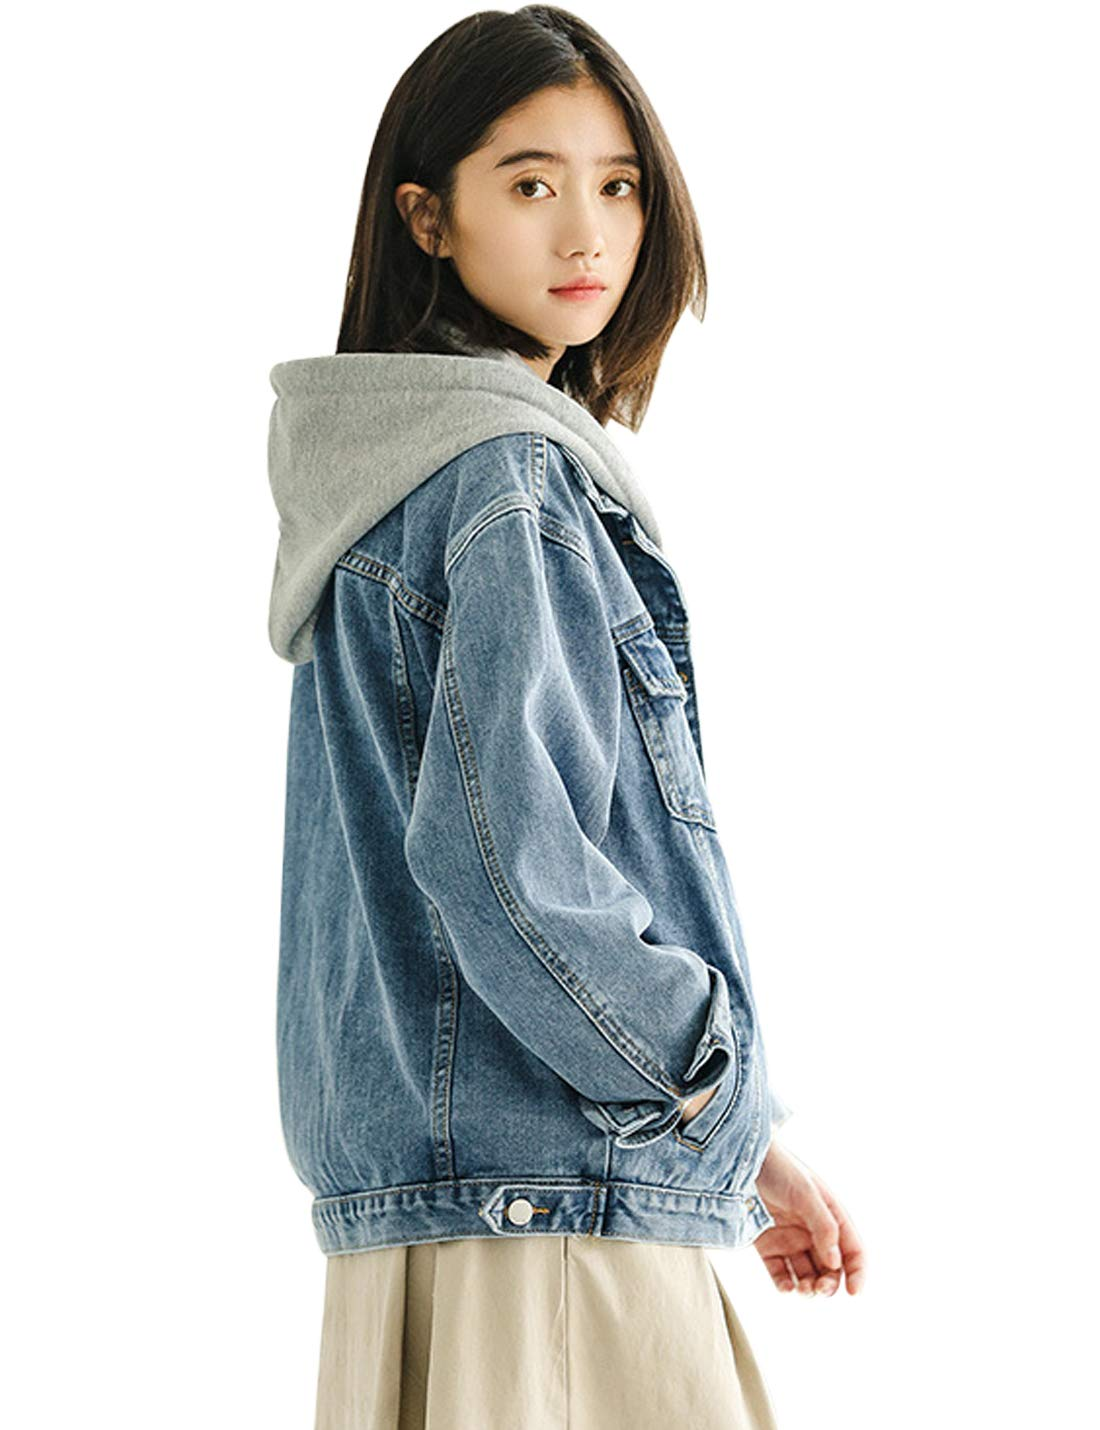 Yeokou Womens Loose Baggy Long Sleeve Hooded Boyfriend BF Denim Jean Jacket Coat (Medium, Style01 Blue)